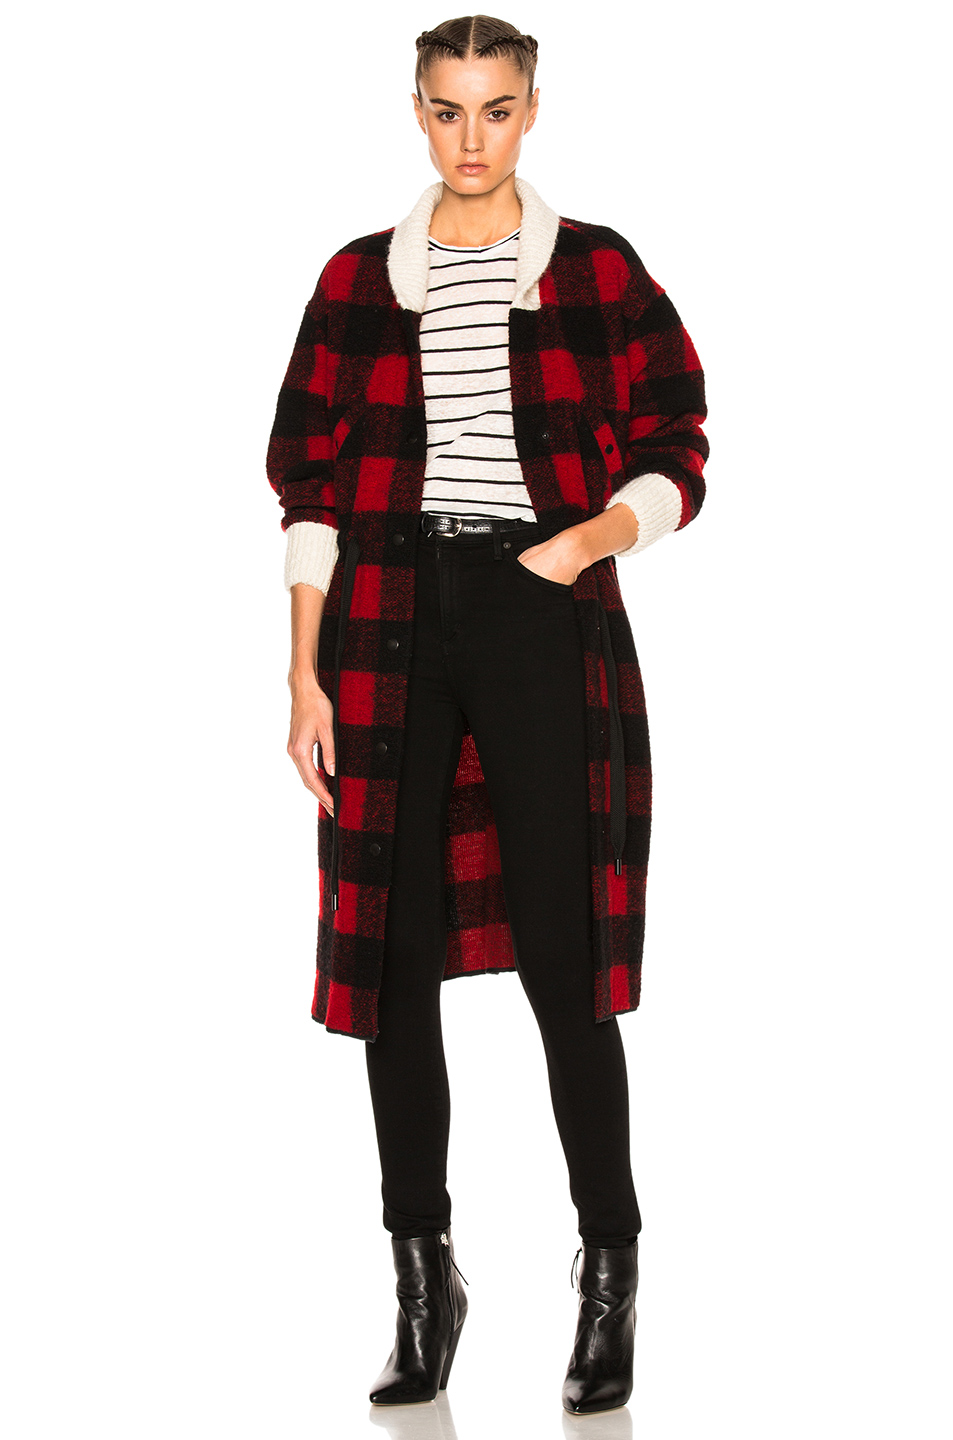 Isabel Marant Etoile Glitz Blanket Coat in Black,Checkered & Plaid,Red